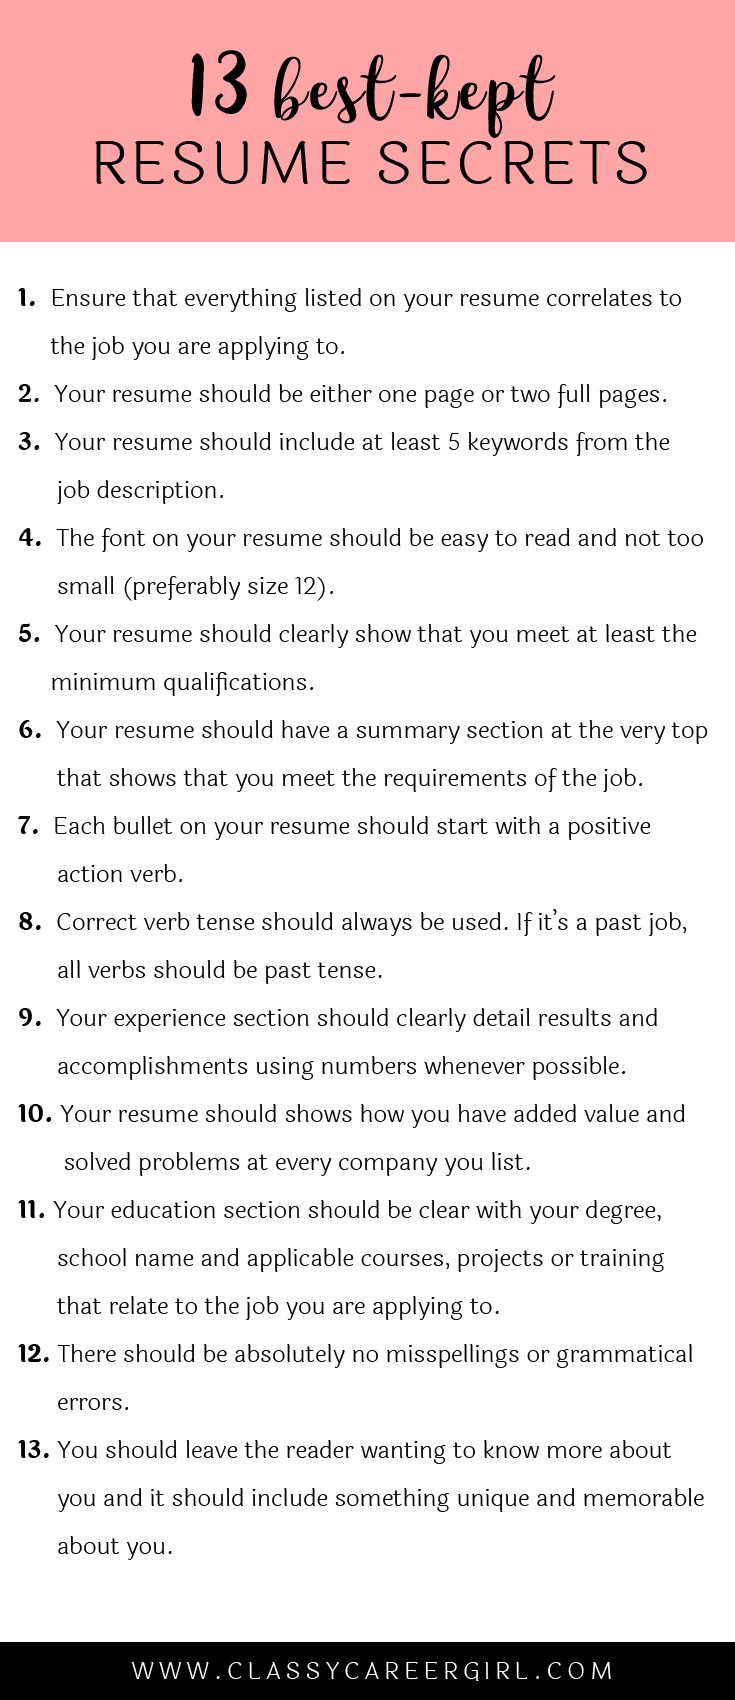 Opposenewapstandardsus  Marvelous  Ideas About Resume On Pinterest  Cv Format Resume  With Likable Some Hiring Managers Will Toss Your Resume Out If You Dont Know These  With Archaic How To Build Resume Also Inside Sales Resume In Addition Resume And Cover Letter Templates And Administrative Assistant Resumes As Well As Best Looking Resumes Additionally How To Do A Resume On Word From Pinterestcom With Opposenewapstandardsus  Likable  Ideas About Resume On Pinterest  Cv Format Resume  With Archaic Some Hiring Managers Will Toss Your Resume Out If You Dont Know These  And Marvelous How To Build Resume Also Inside Sales Resume In Addition Resume And Cover Letter Templates From Pinterestcom